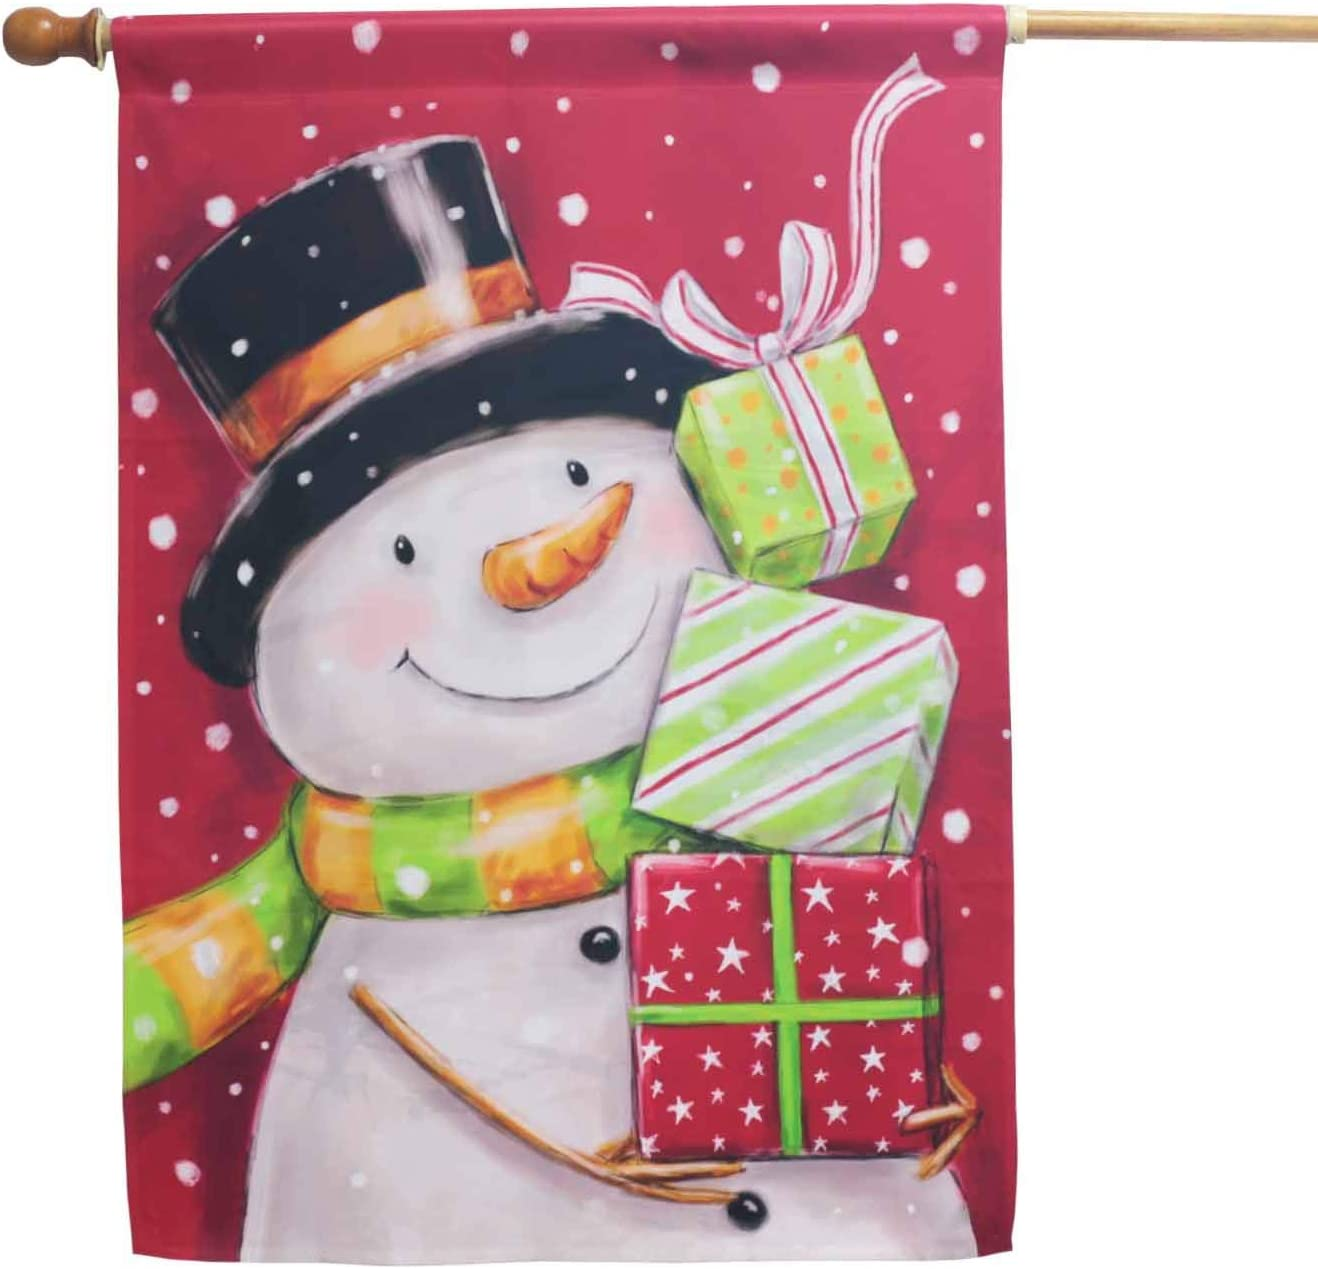 Super popular specialty store LAYOER Winter Garden Sales results No. 1 Flag Snowman Gift Year H Snow Christmas New